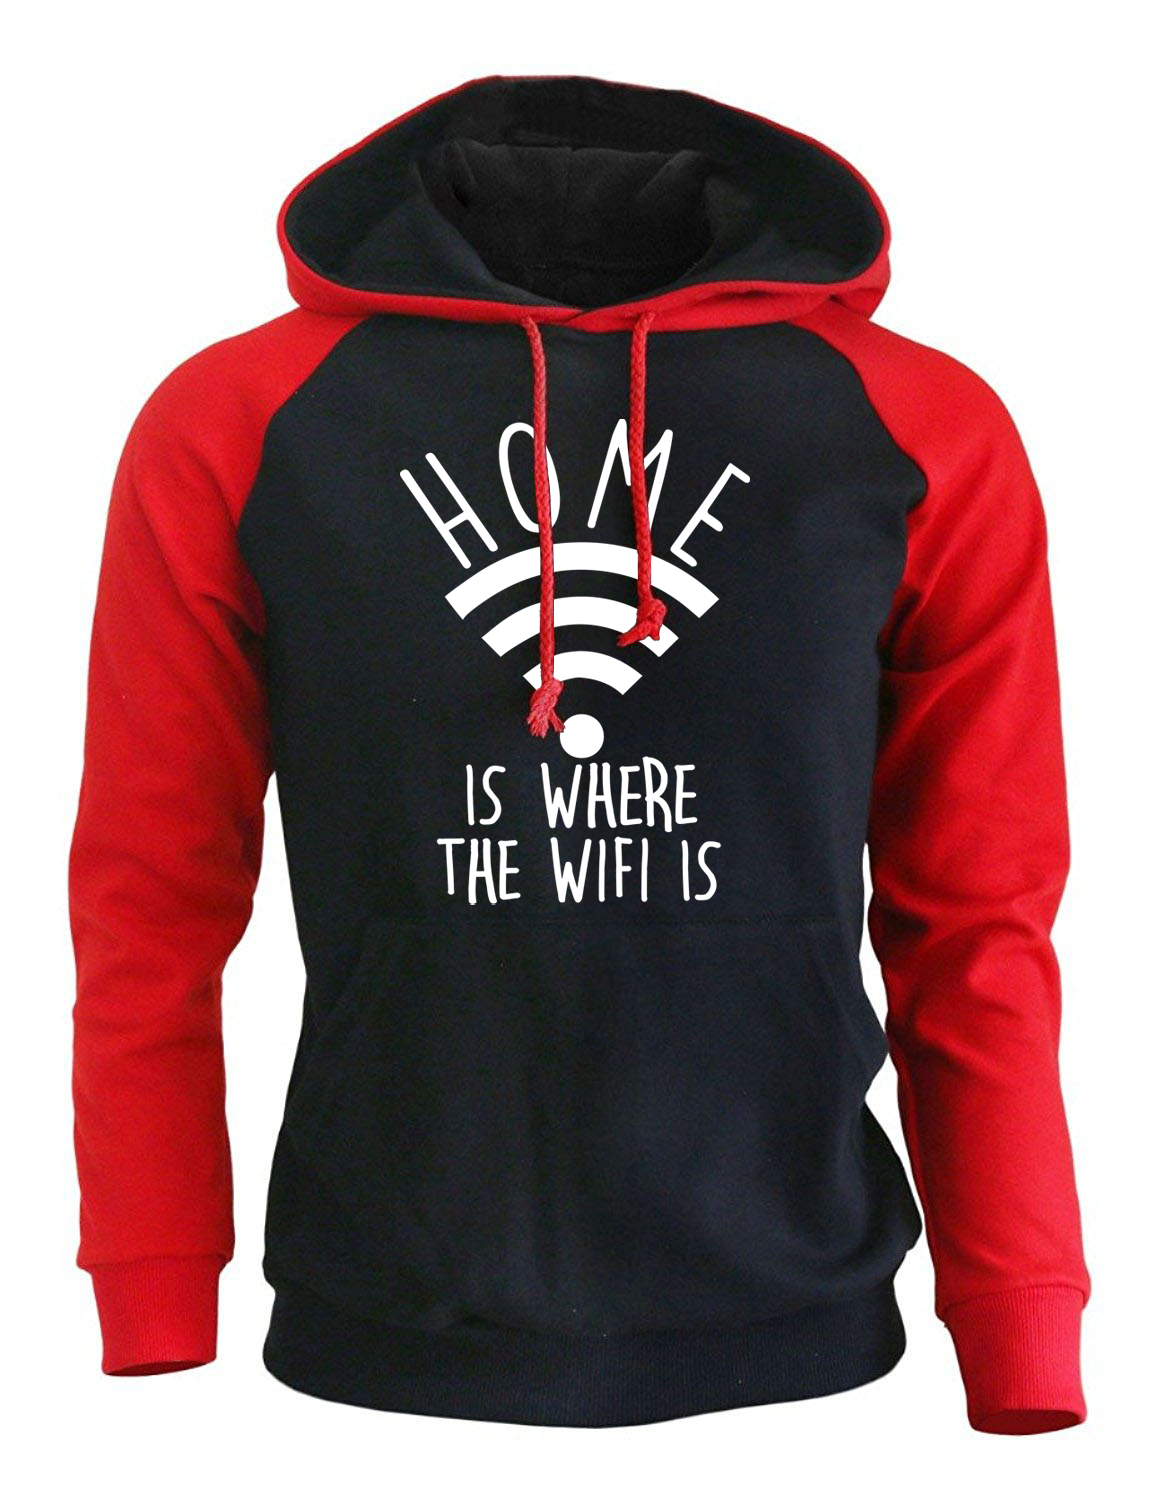 Funny Hoody For Men Print Home Is Where The Wifi Is Streetwear Harajuku 2017 Autumn Winter Fleece Raglan Sweatshirts Brand Punk